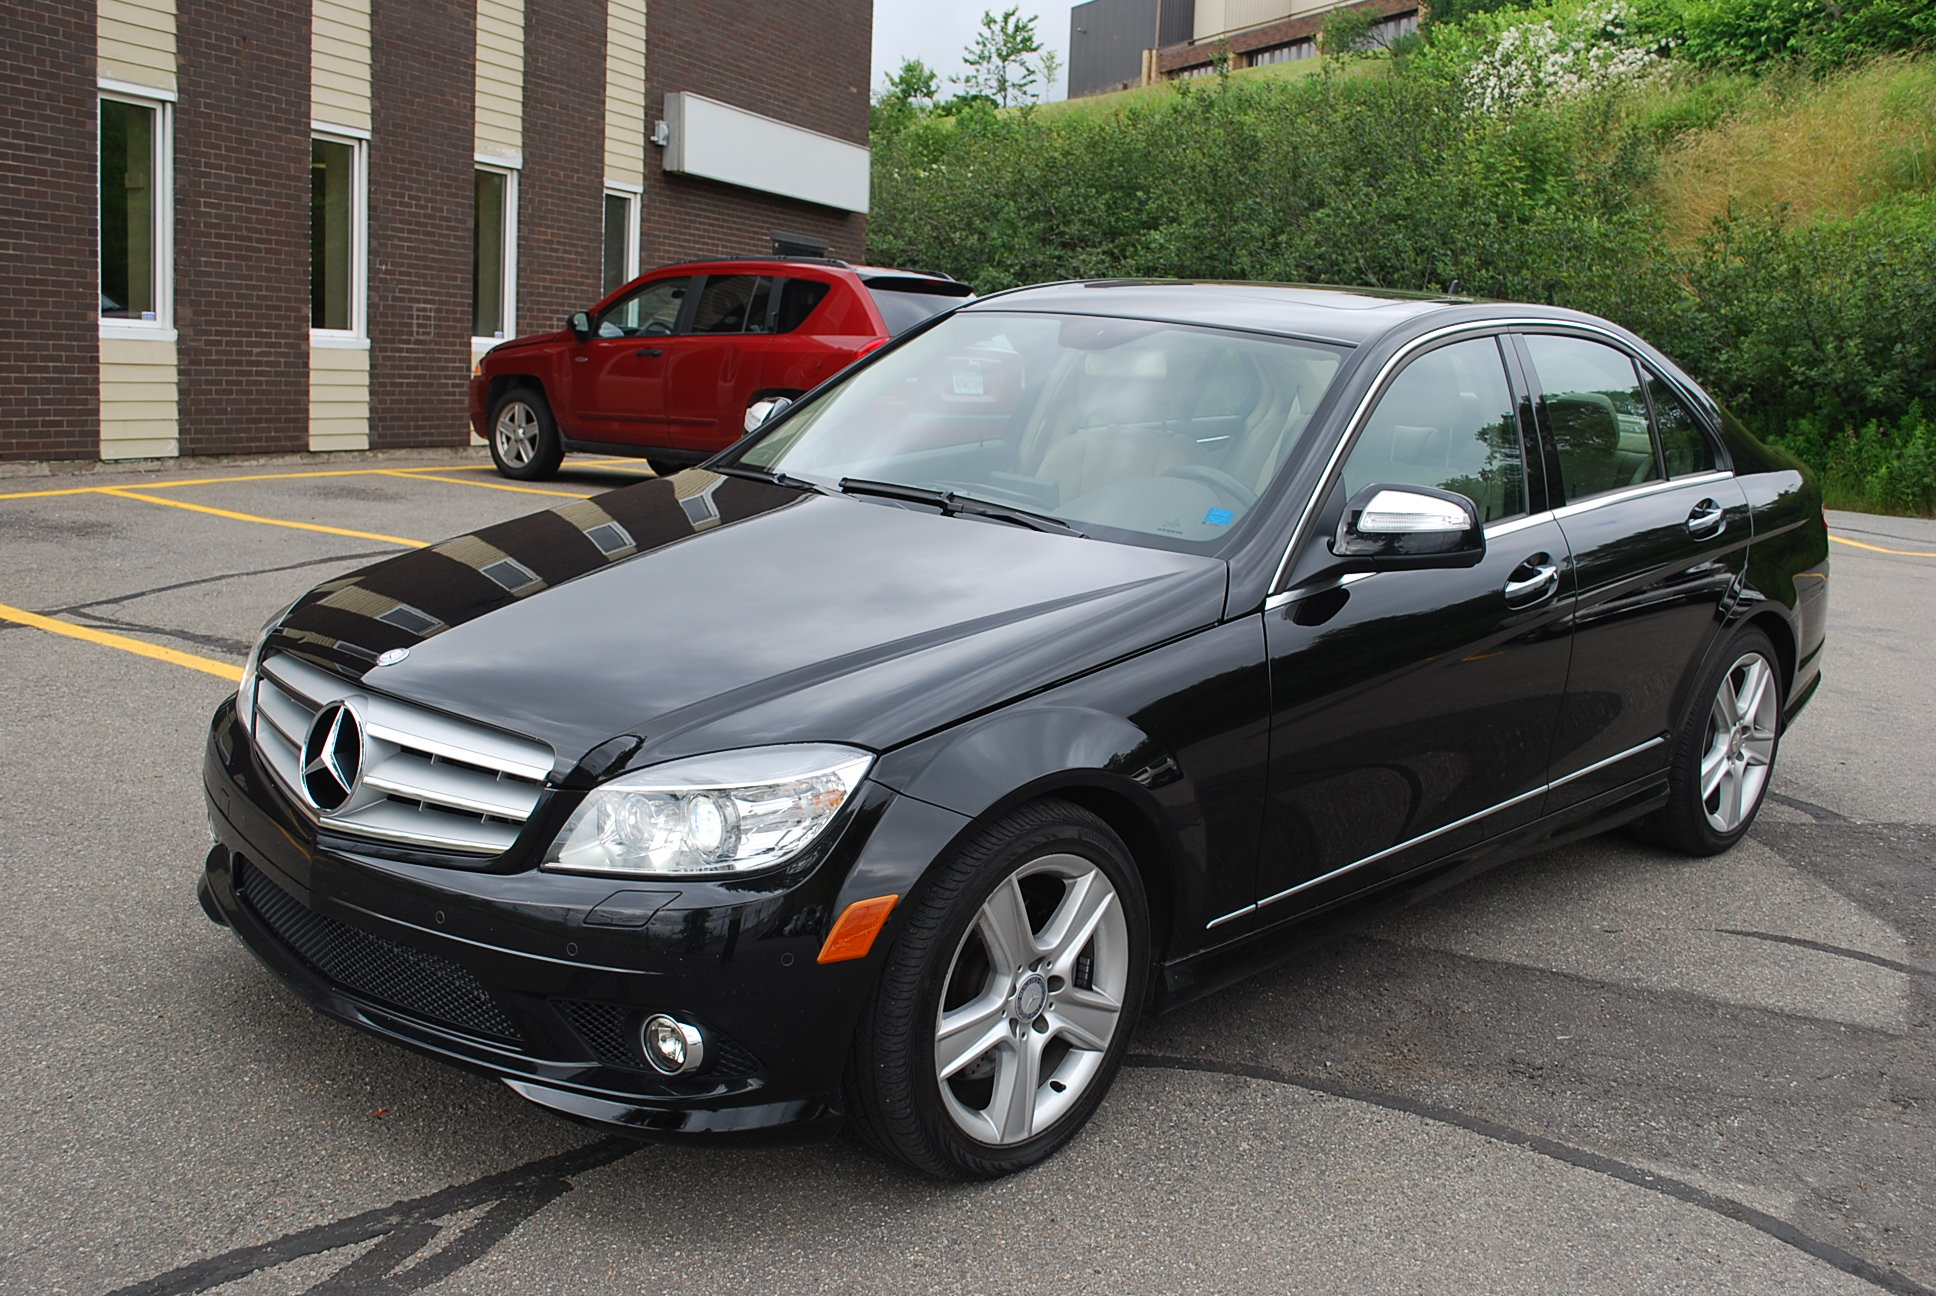 Used 2009 mercedes benz c300 4matic for sale in saint john nb for Mercedes benz 2009 c300